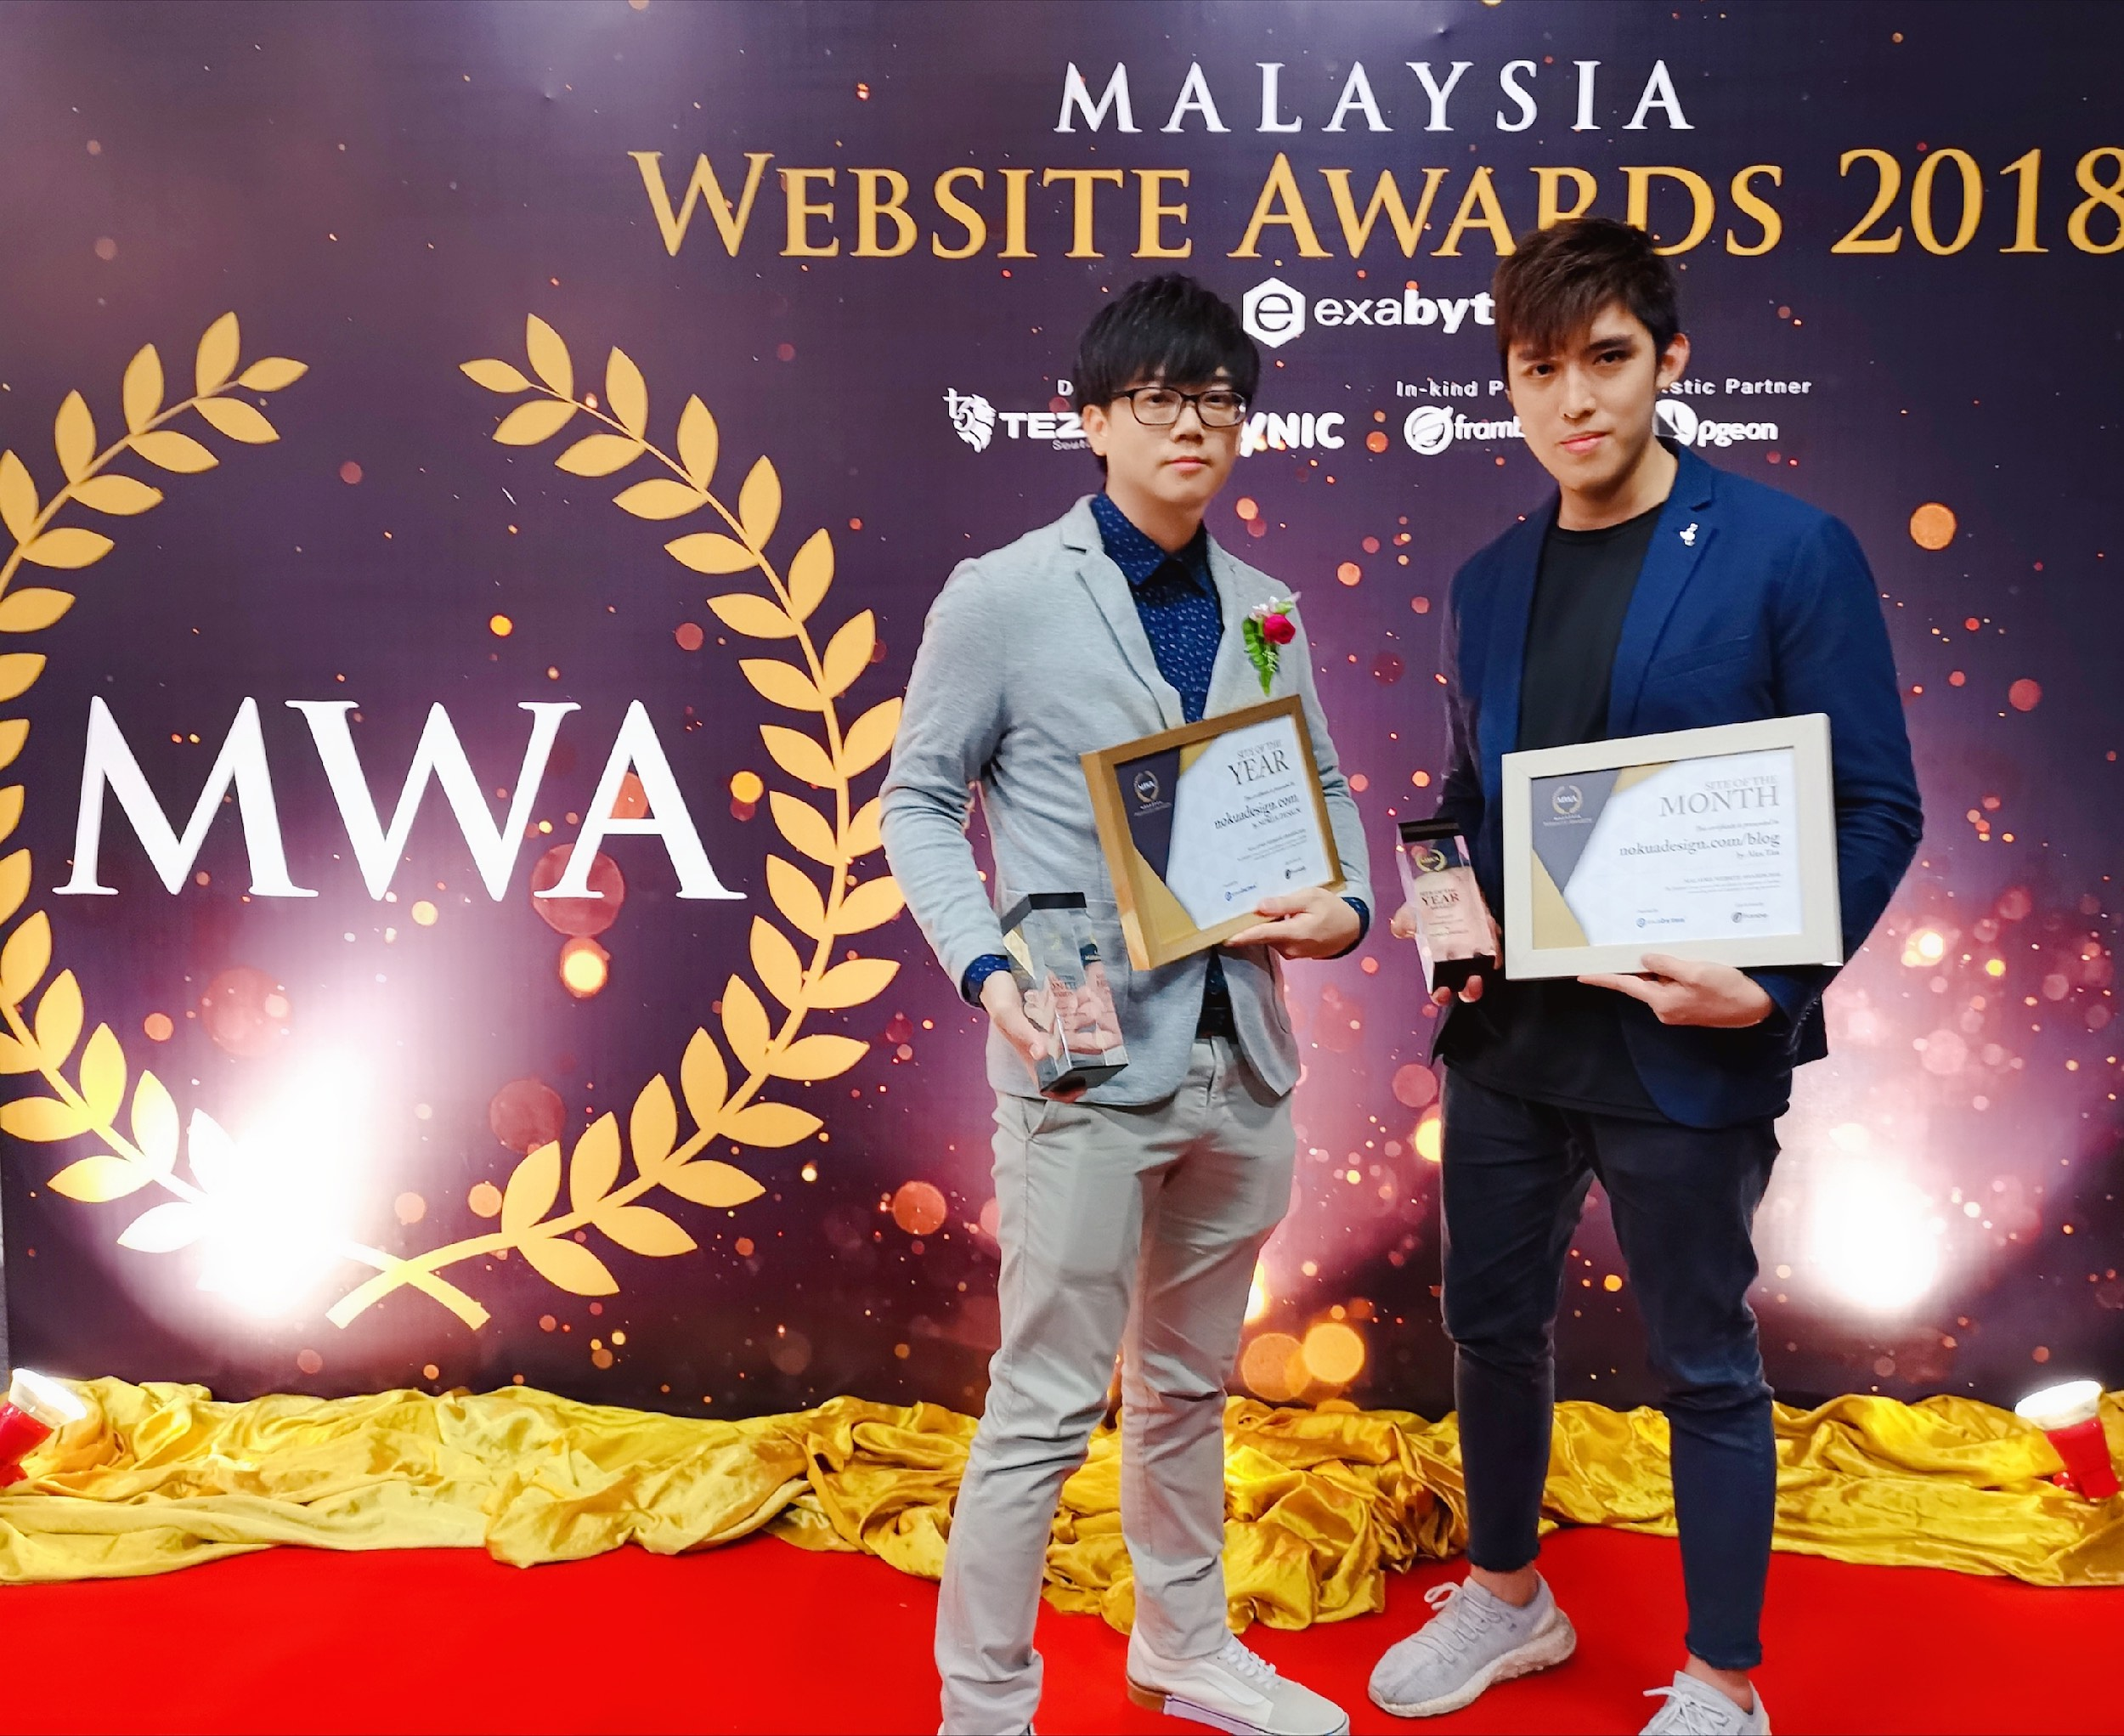 Malaysia Website Awards Winner 2018